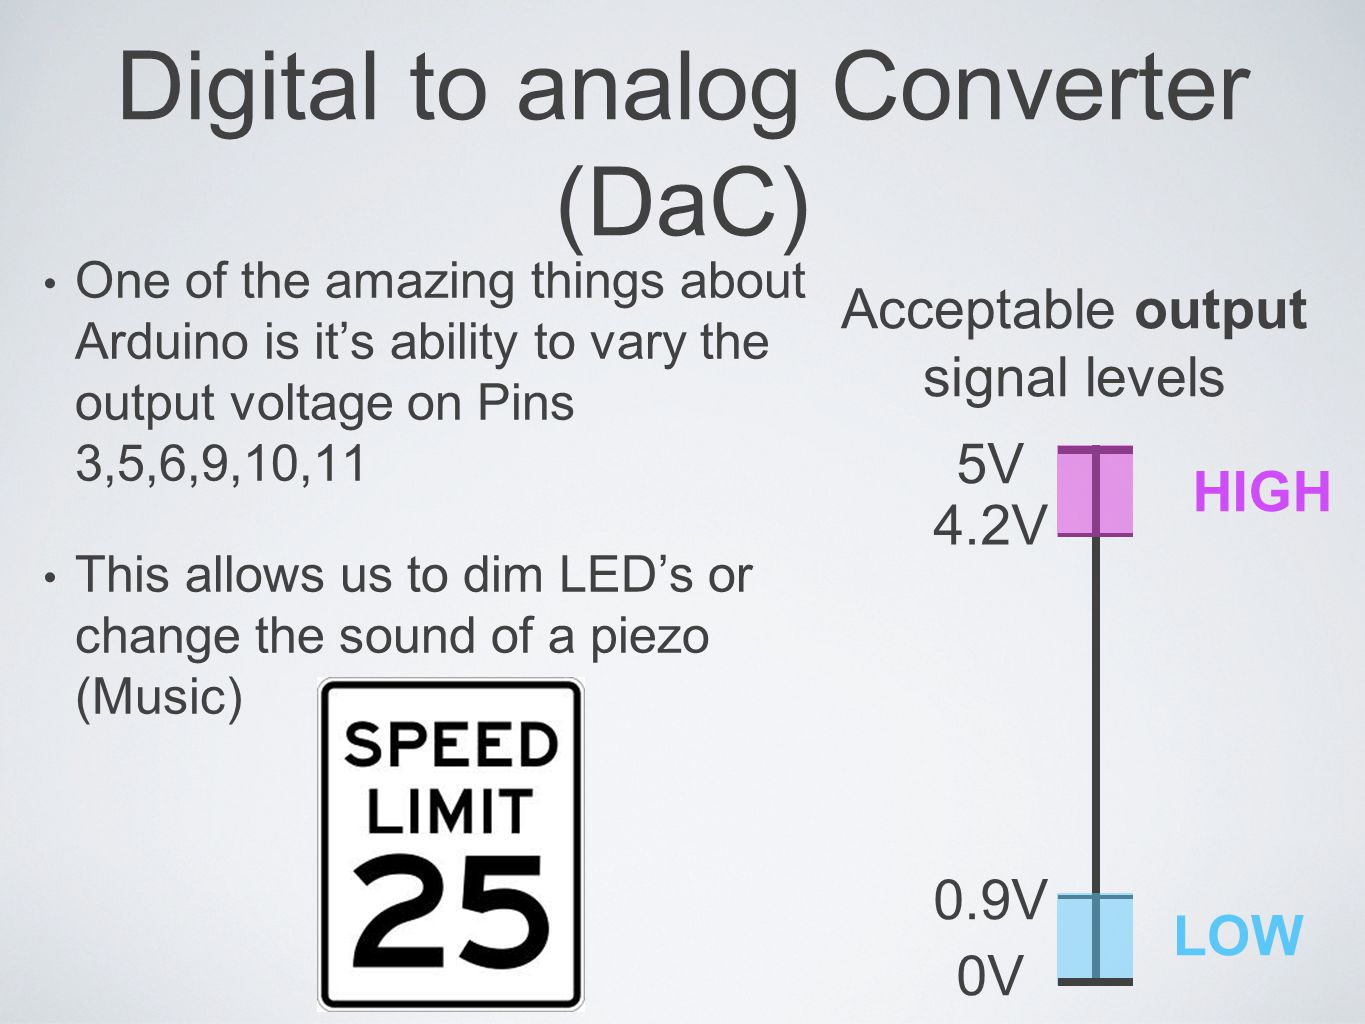 Digital to analog Converter (DaC) One of the amazing things about Arduino is it's ability to vary the output voltage on Pins 3,5,6,9,10,11 This allows us to dim LED's or change the sound of a piezo (Music) Acceptable output signal levels 5V 0V 0.9V 4.2V HIGH LOW